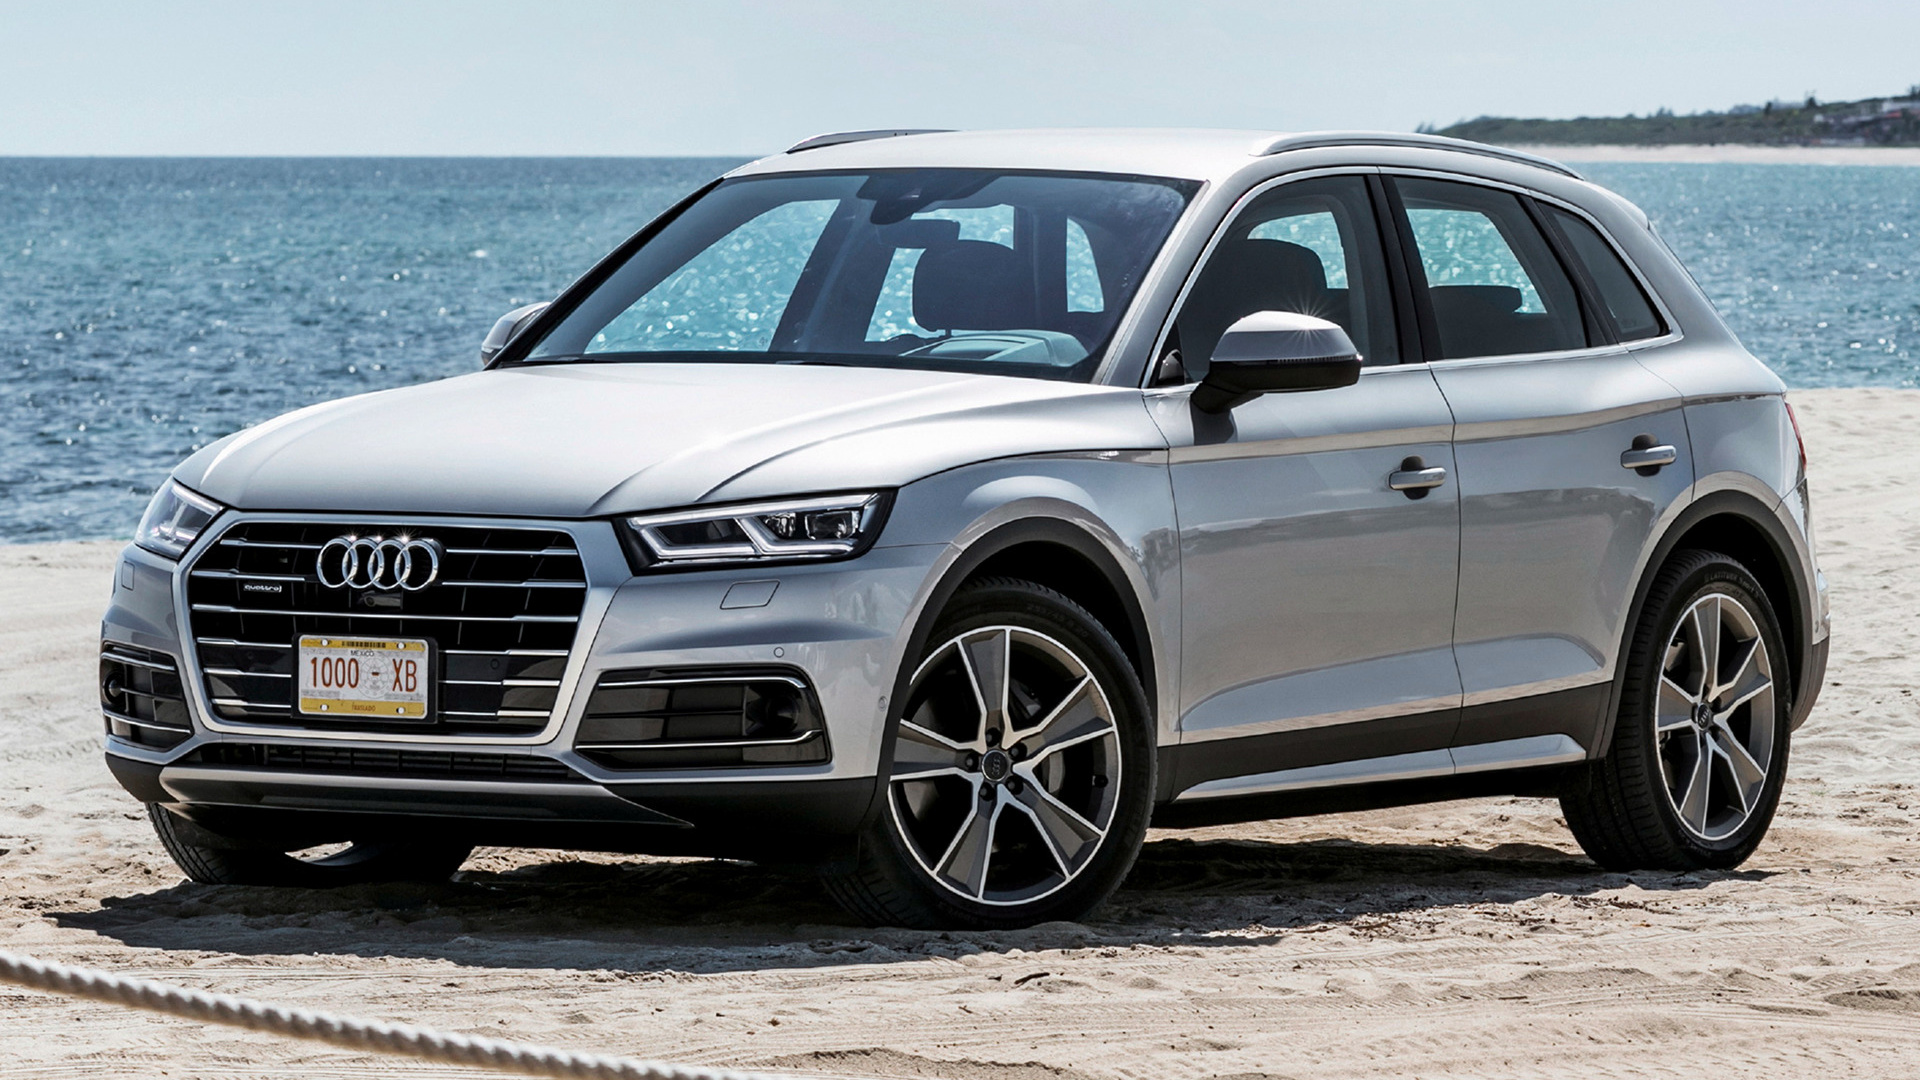 1920x1080 - Audi Q5 Wallpapers 20